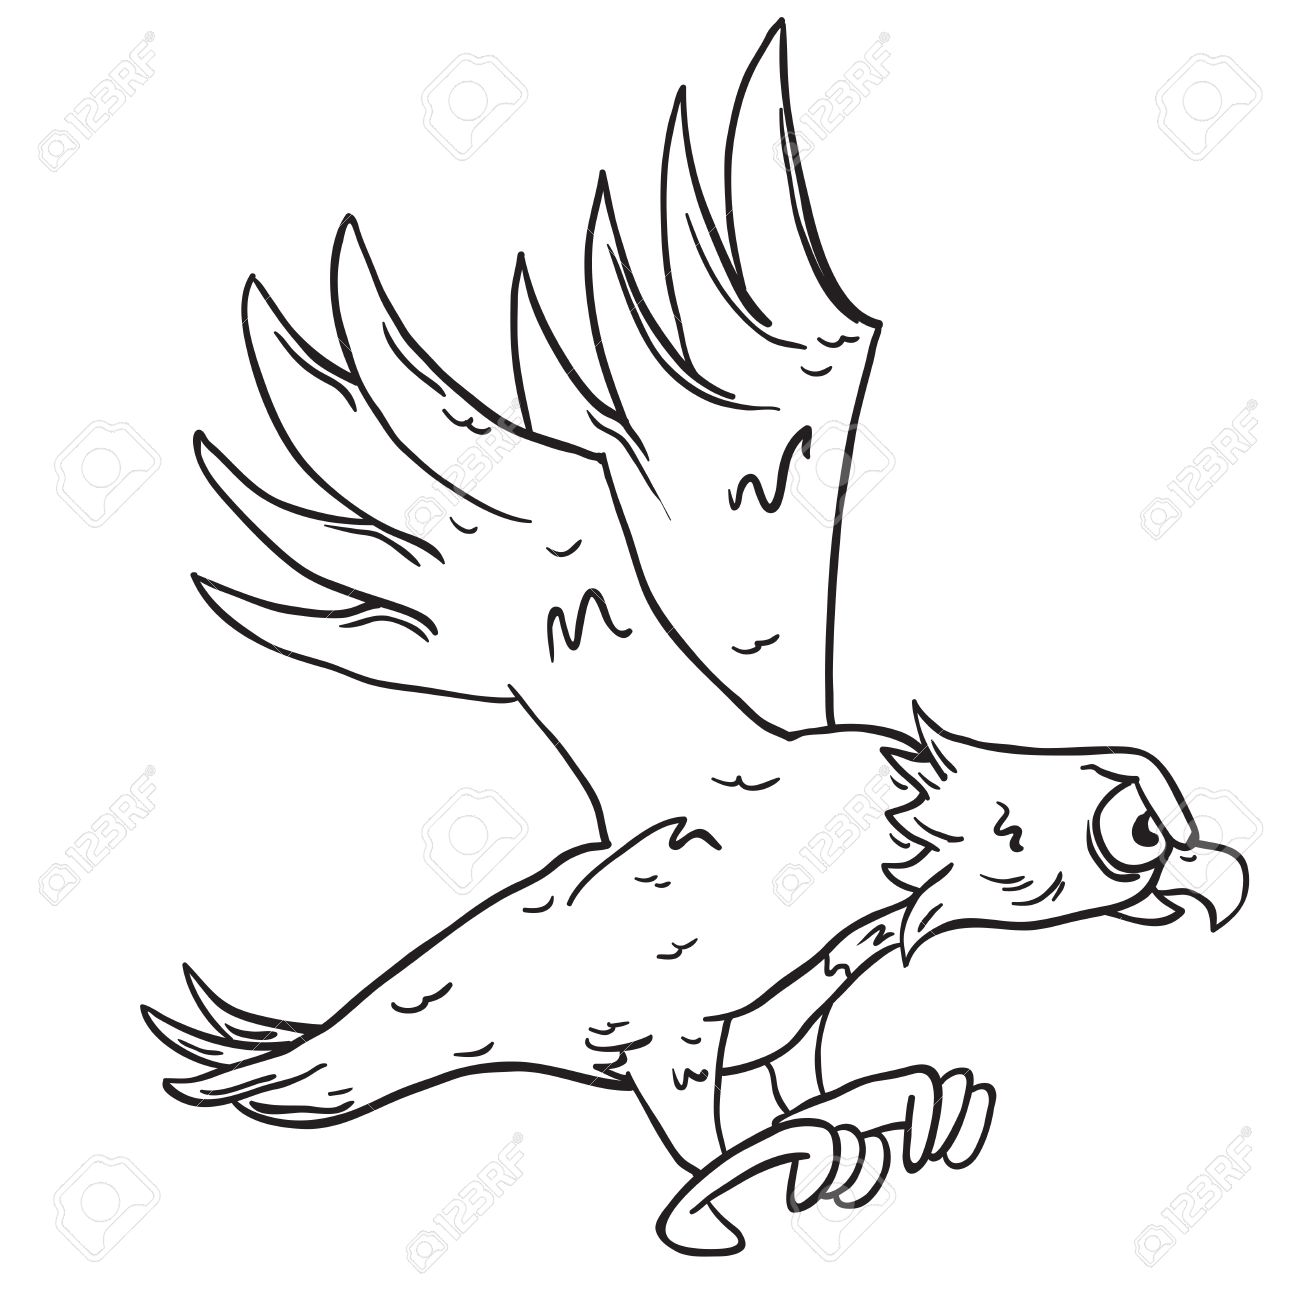 1300x1300 Simple Black And White Eagle Cartoon Royalty Free Cliparts